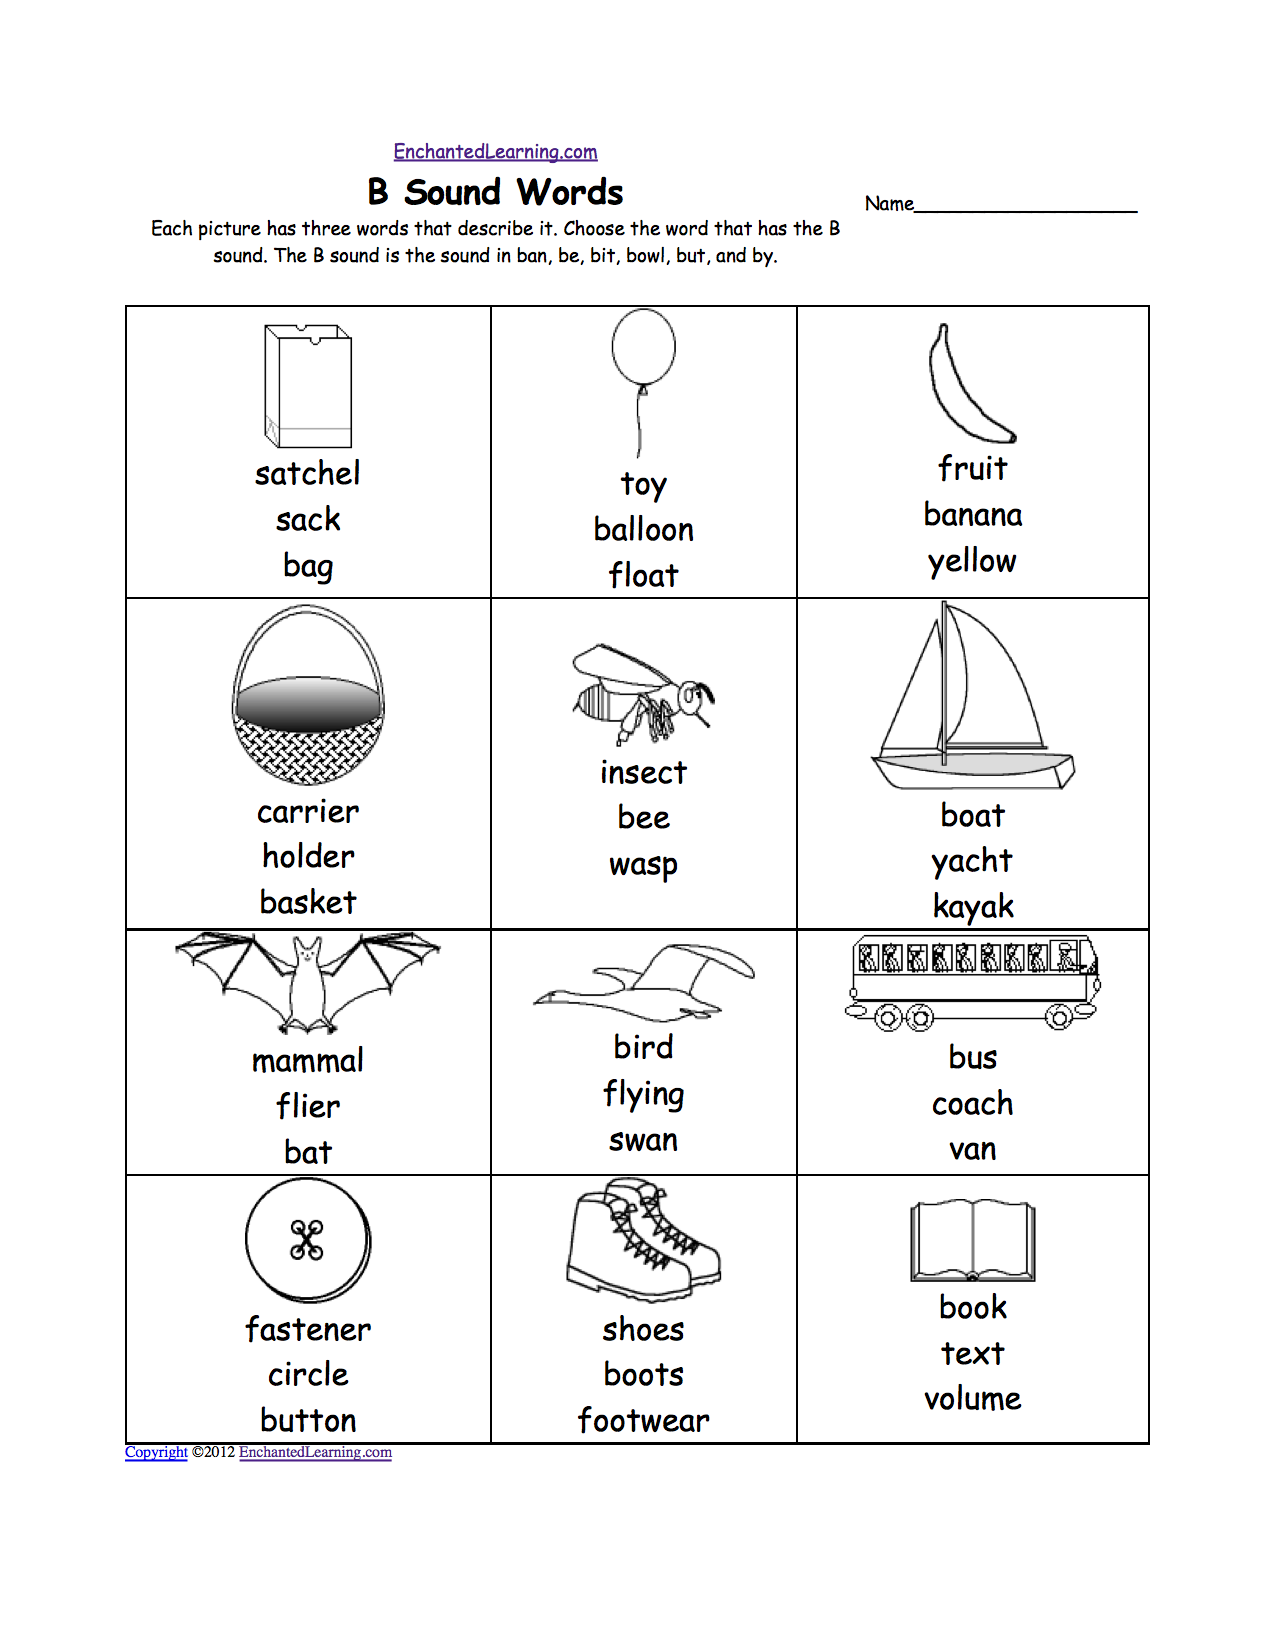 Weirdmailus  Pretty Phonics Worksheets Multiple Choice Worksheets To Print  With Lovely Quotbquot Sound Phonics Worksheet Multiple Choice Each Picture Has Three Words That Describe It Choose The Word That Has A Quotbquot Sound The Quotbquot Sound Is The Sound  With Enchanting Nd Grade Math Test Worksheets Also Science Nd Grade Worksheets In Addition Grade  English Worksheets And Percent Composition And Molecular Formula Worksheet Answers With Work As Well As Simple Distributive Property Worksheets Additionally Solid Geometry Worksheets From Enchantedlearningcom With Weirdmailus  Lovely Phonics Worksheets Multiple Choice Worksheets To Print  With Enchanting Quotbquot Sound Phonics Worksheet Multiple Choice Each Picture Has Three Words That Describe It Choose The Word That Has A Quotbquot Sound The Quotbquot Sound Is The Sound  And Pretty Nd Grade Math Test Worksheets Also Science Nd Grade Worksheets In Addition Grade  English Worksheets From Enchantedlearningcom